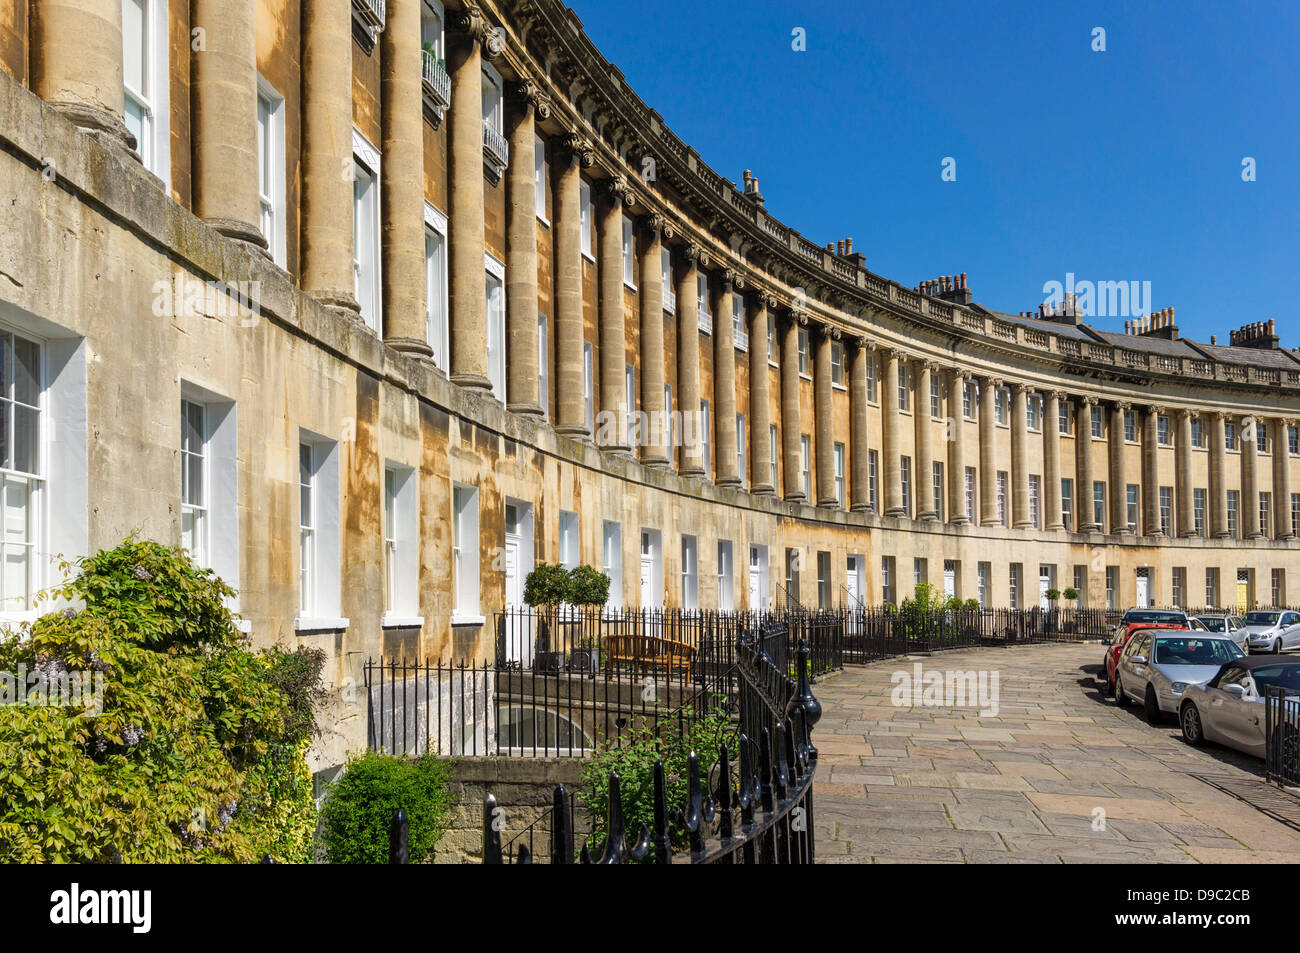 Bath, England - The Royal Crescent, Bath, Somerset, England, UK - Stock Image